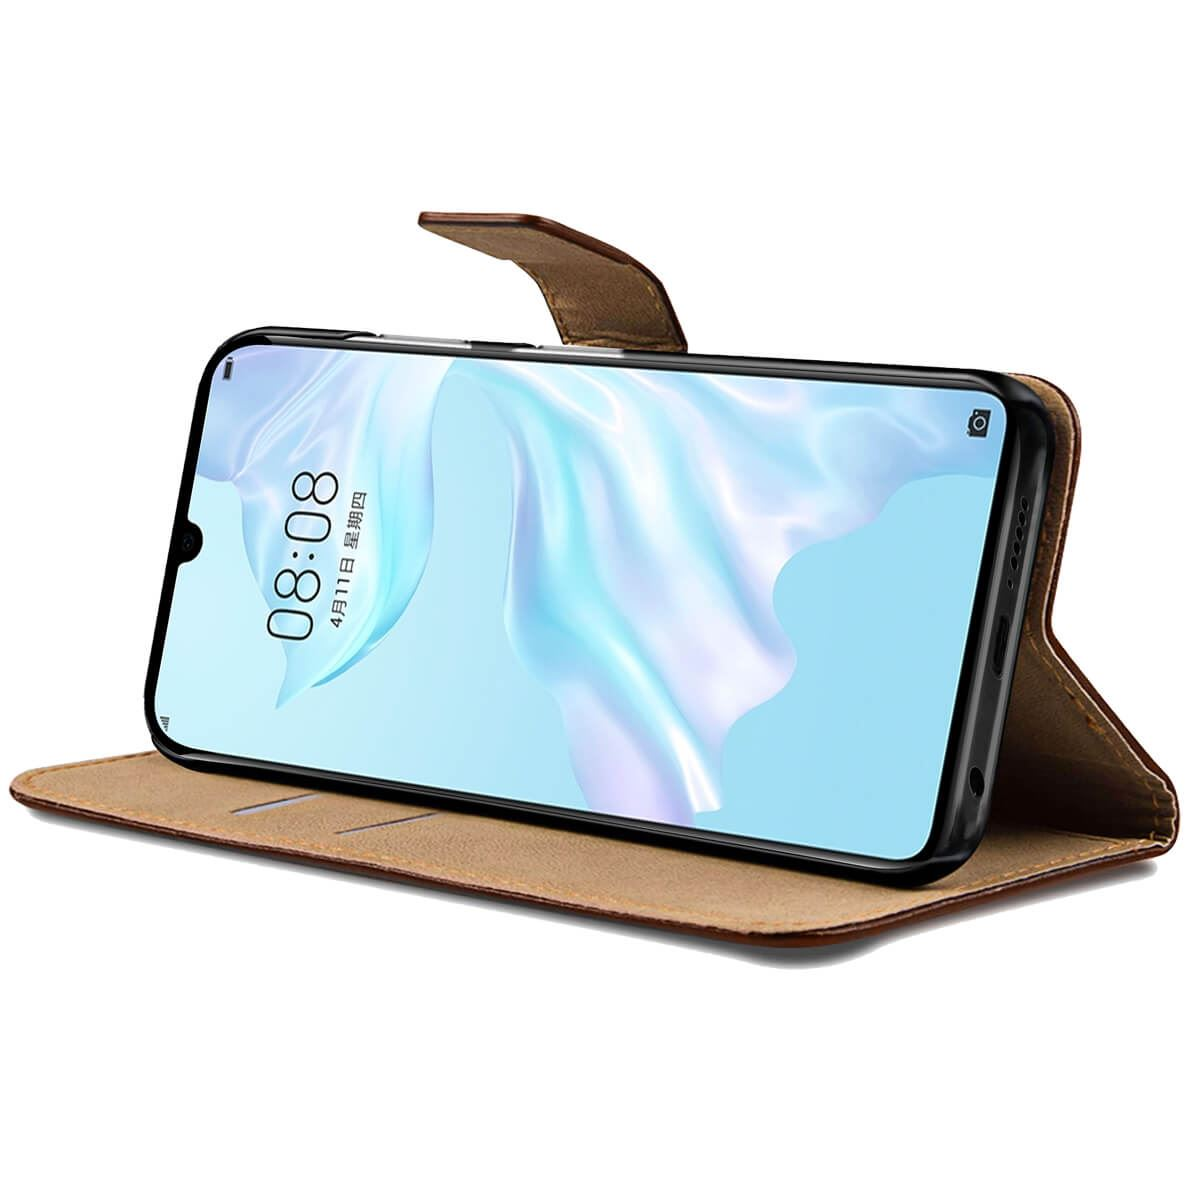 Flip-Cover-For-Huawei-P30-Lite-Pro-Leather-Wallet-Style-With-Magnetic-Closure thumbnail 6